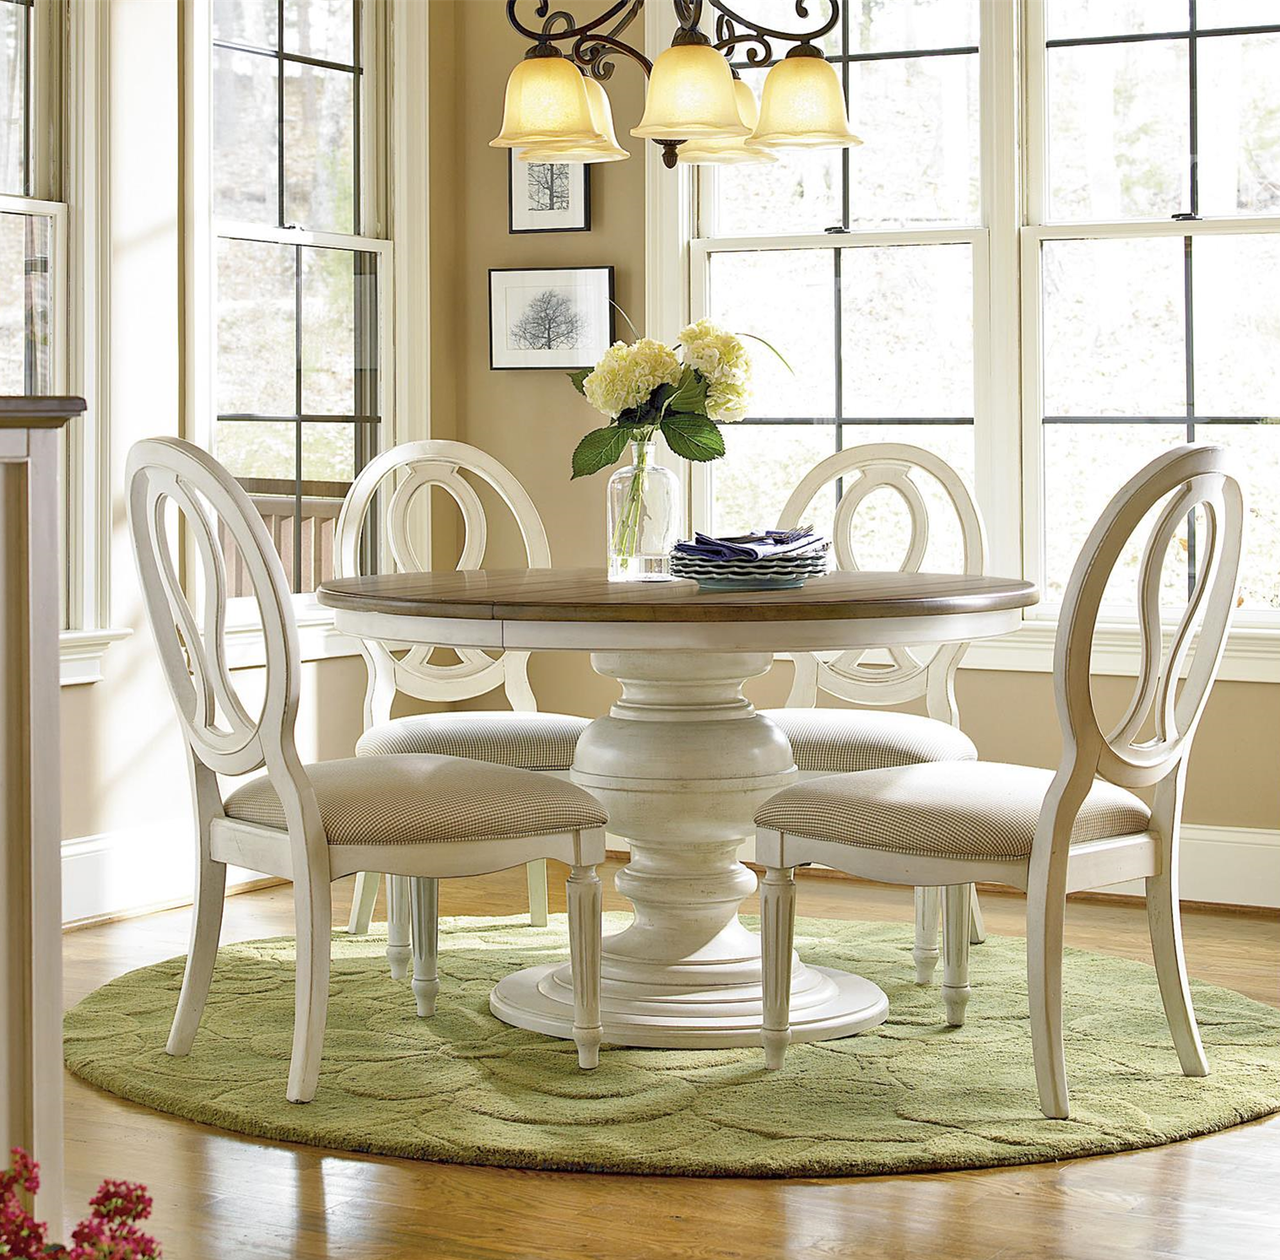 Round Breakfast Table Set: Country-Chic 5 Piece Round White Dining Table Set